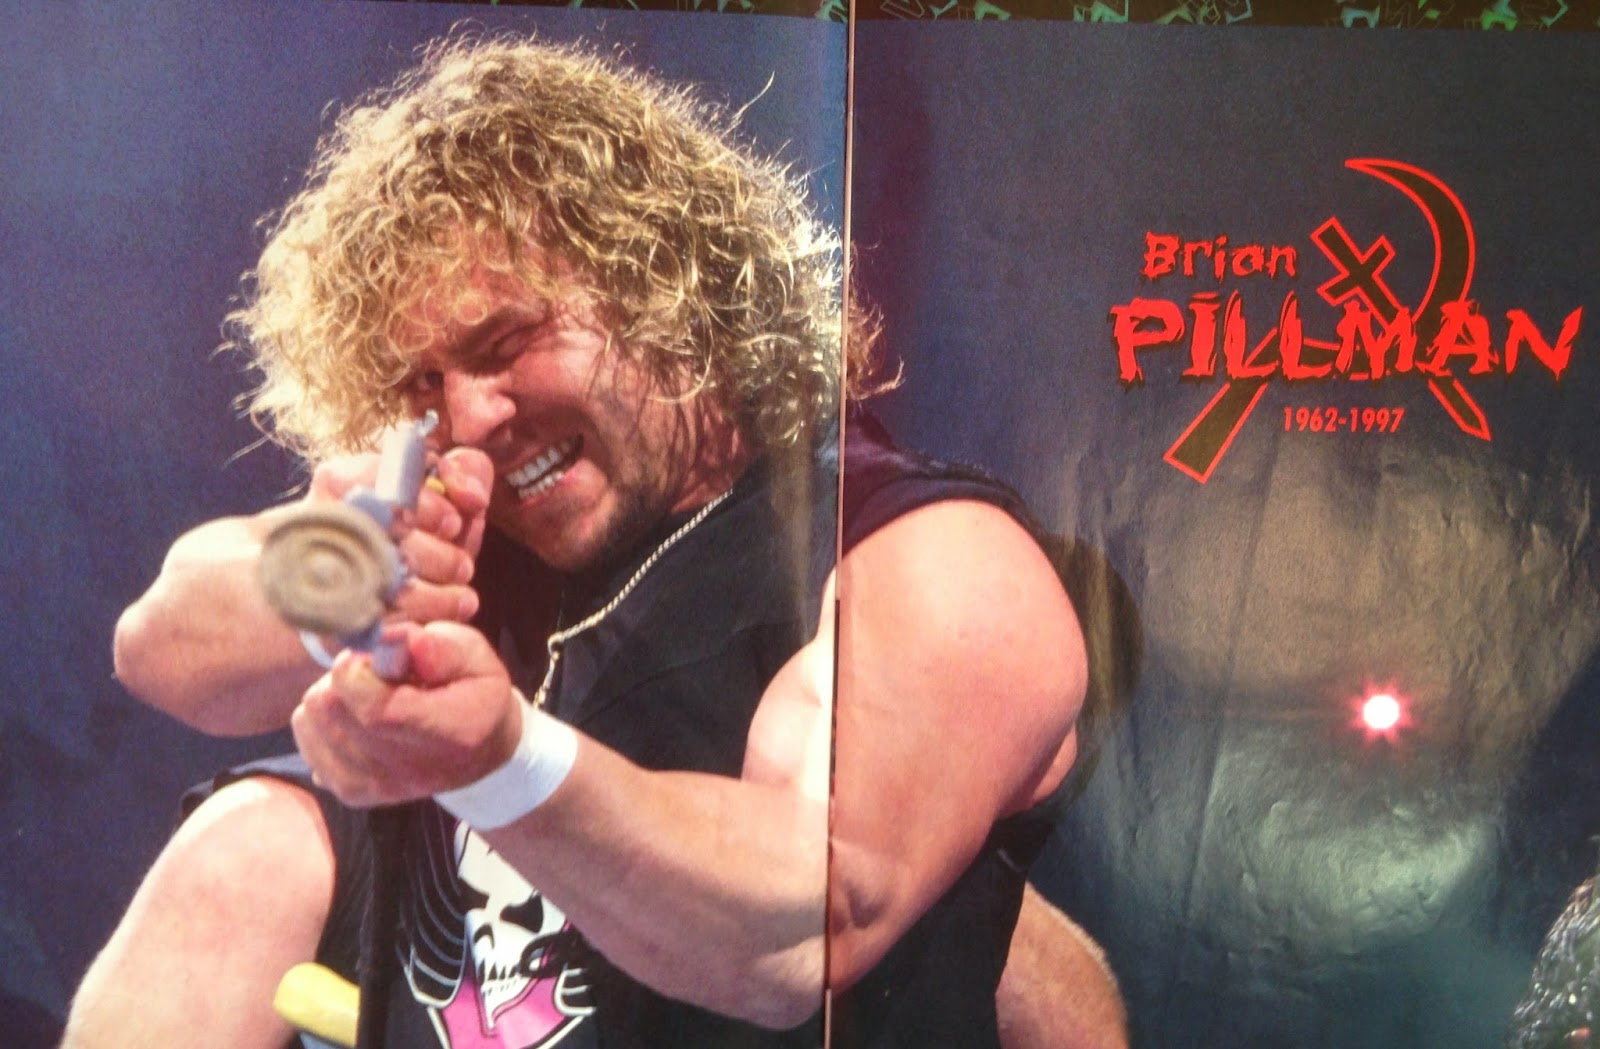 WWF MAGAZINE - JANUARY 1998 -  Brian Pillman 1962 - 1997